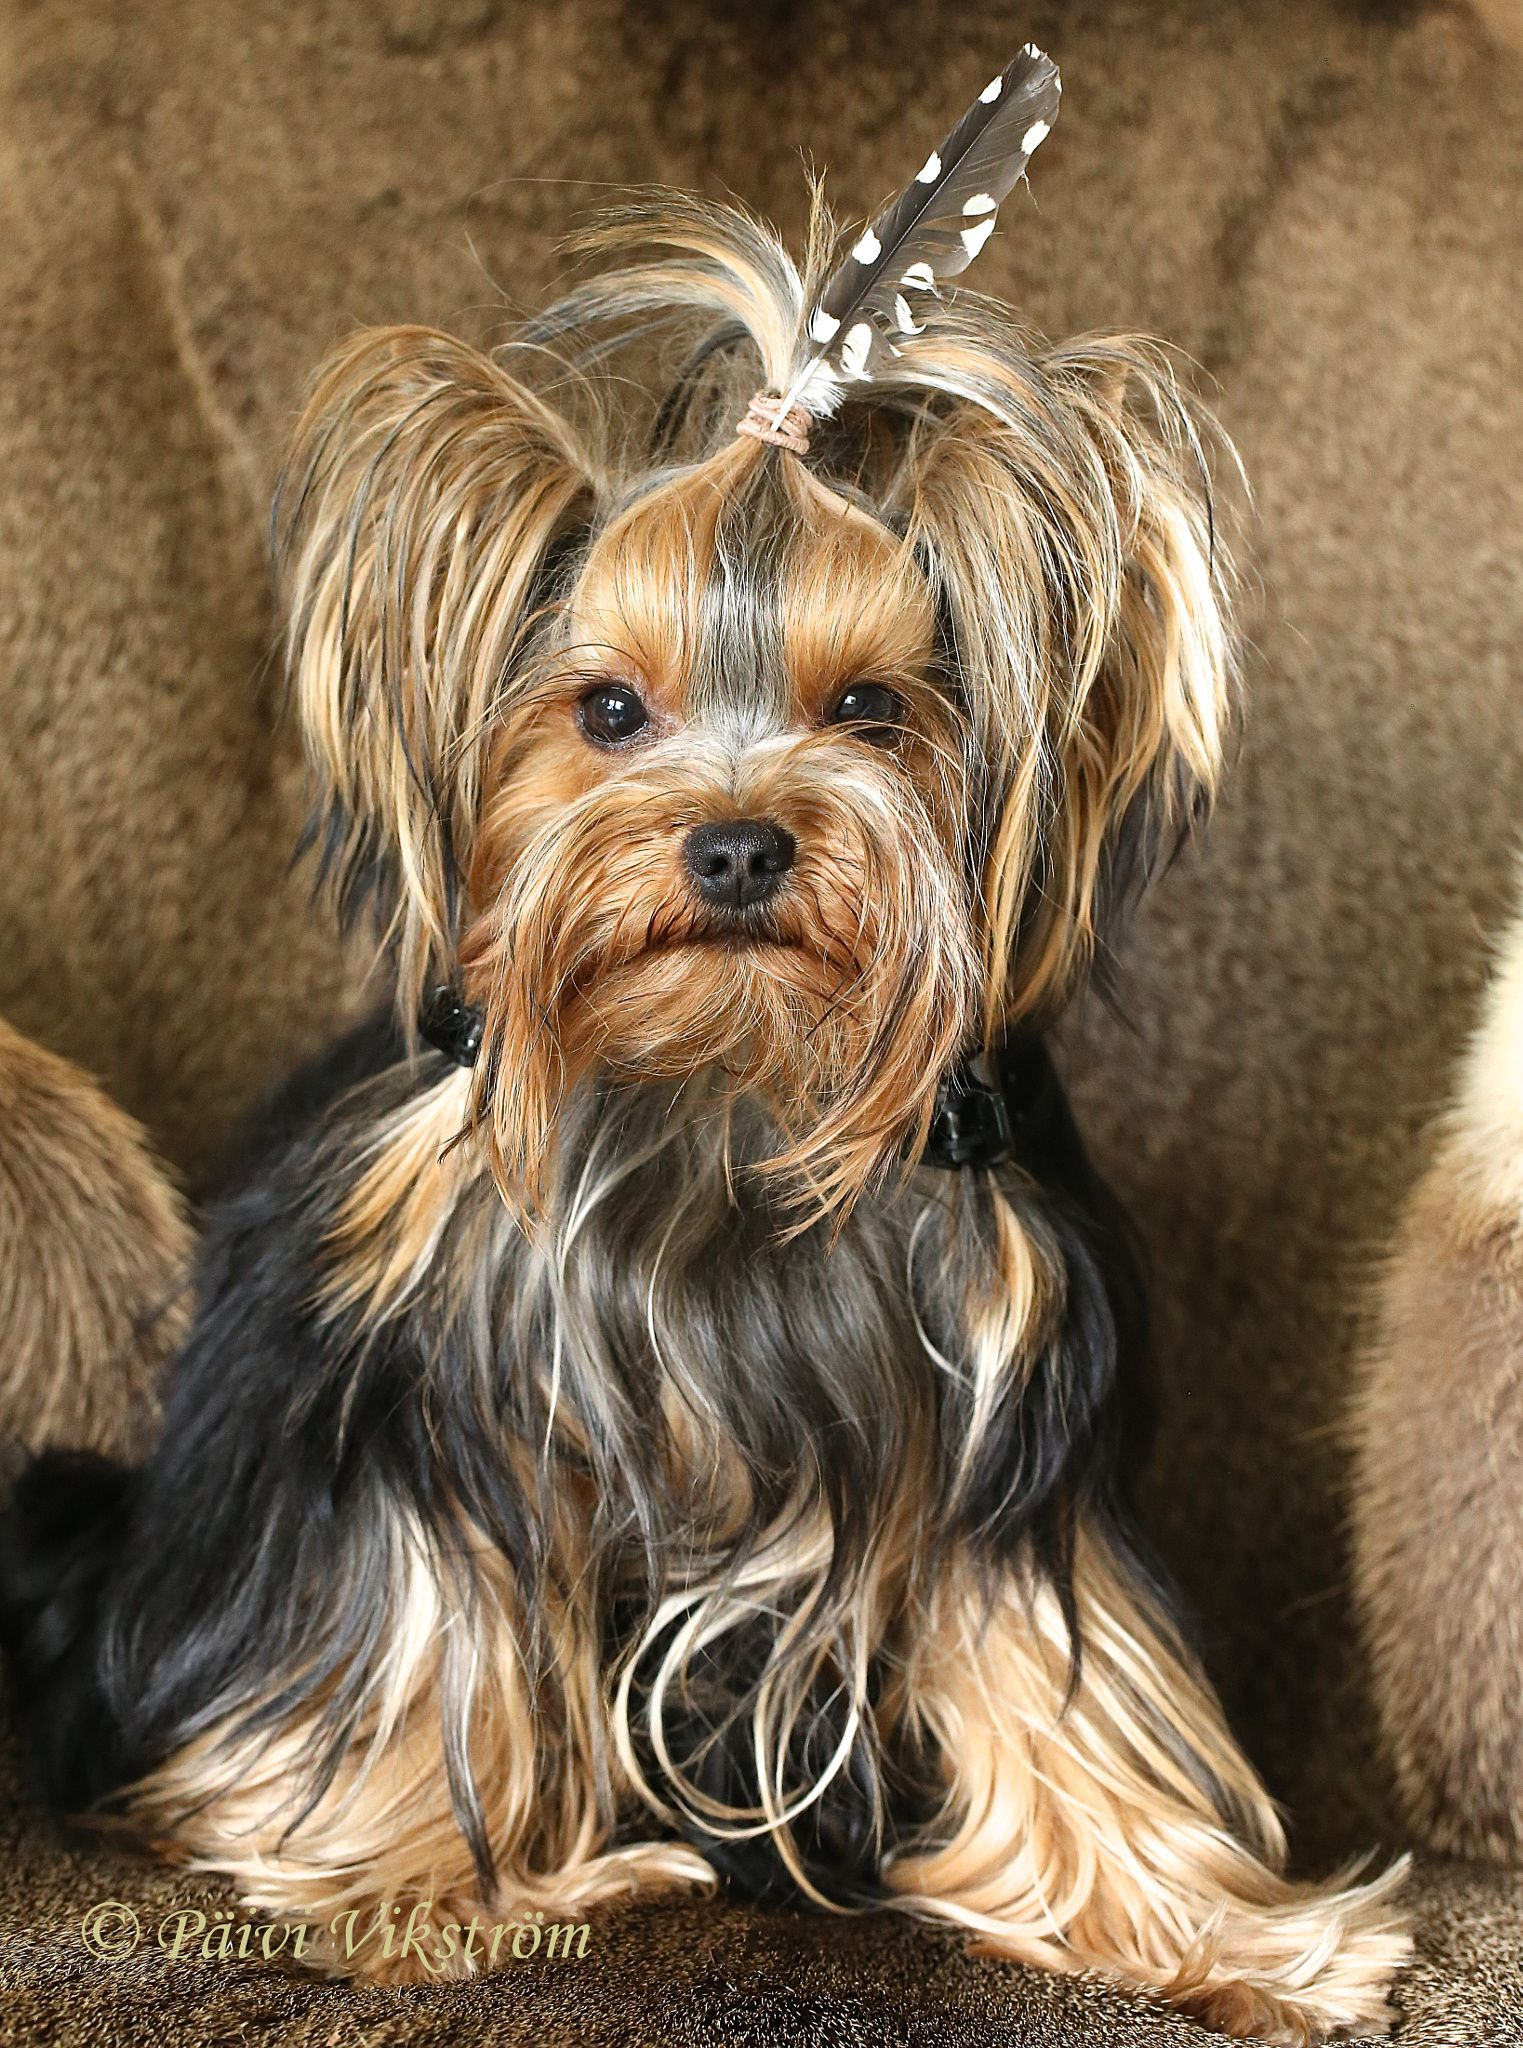 Little Hiawatha By Paivi Vikstrom On 500px Small Dog Photos Yorkie Puppy Cute Dogs Breeds